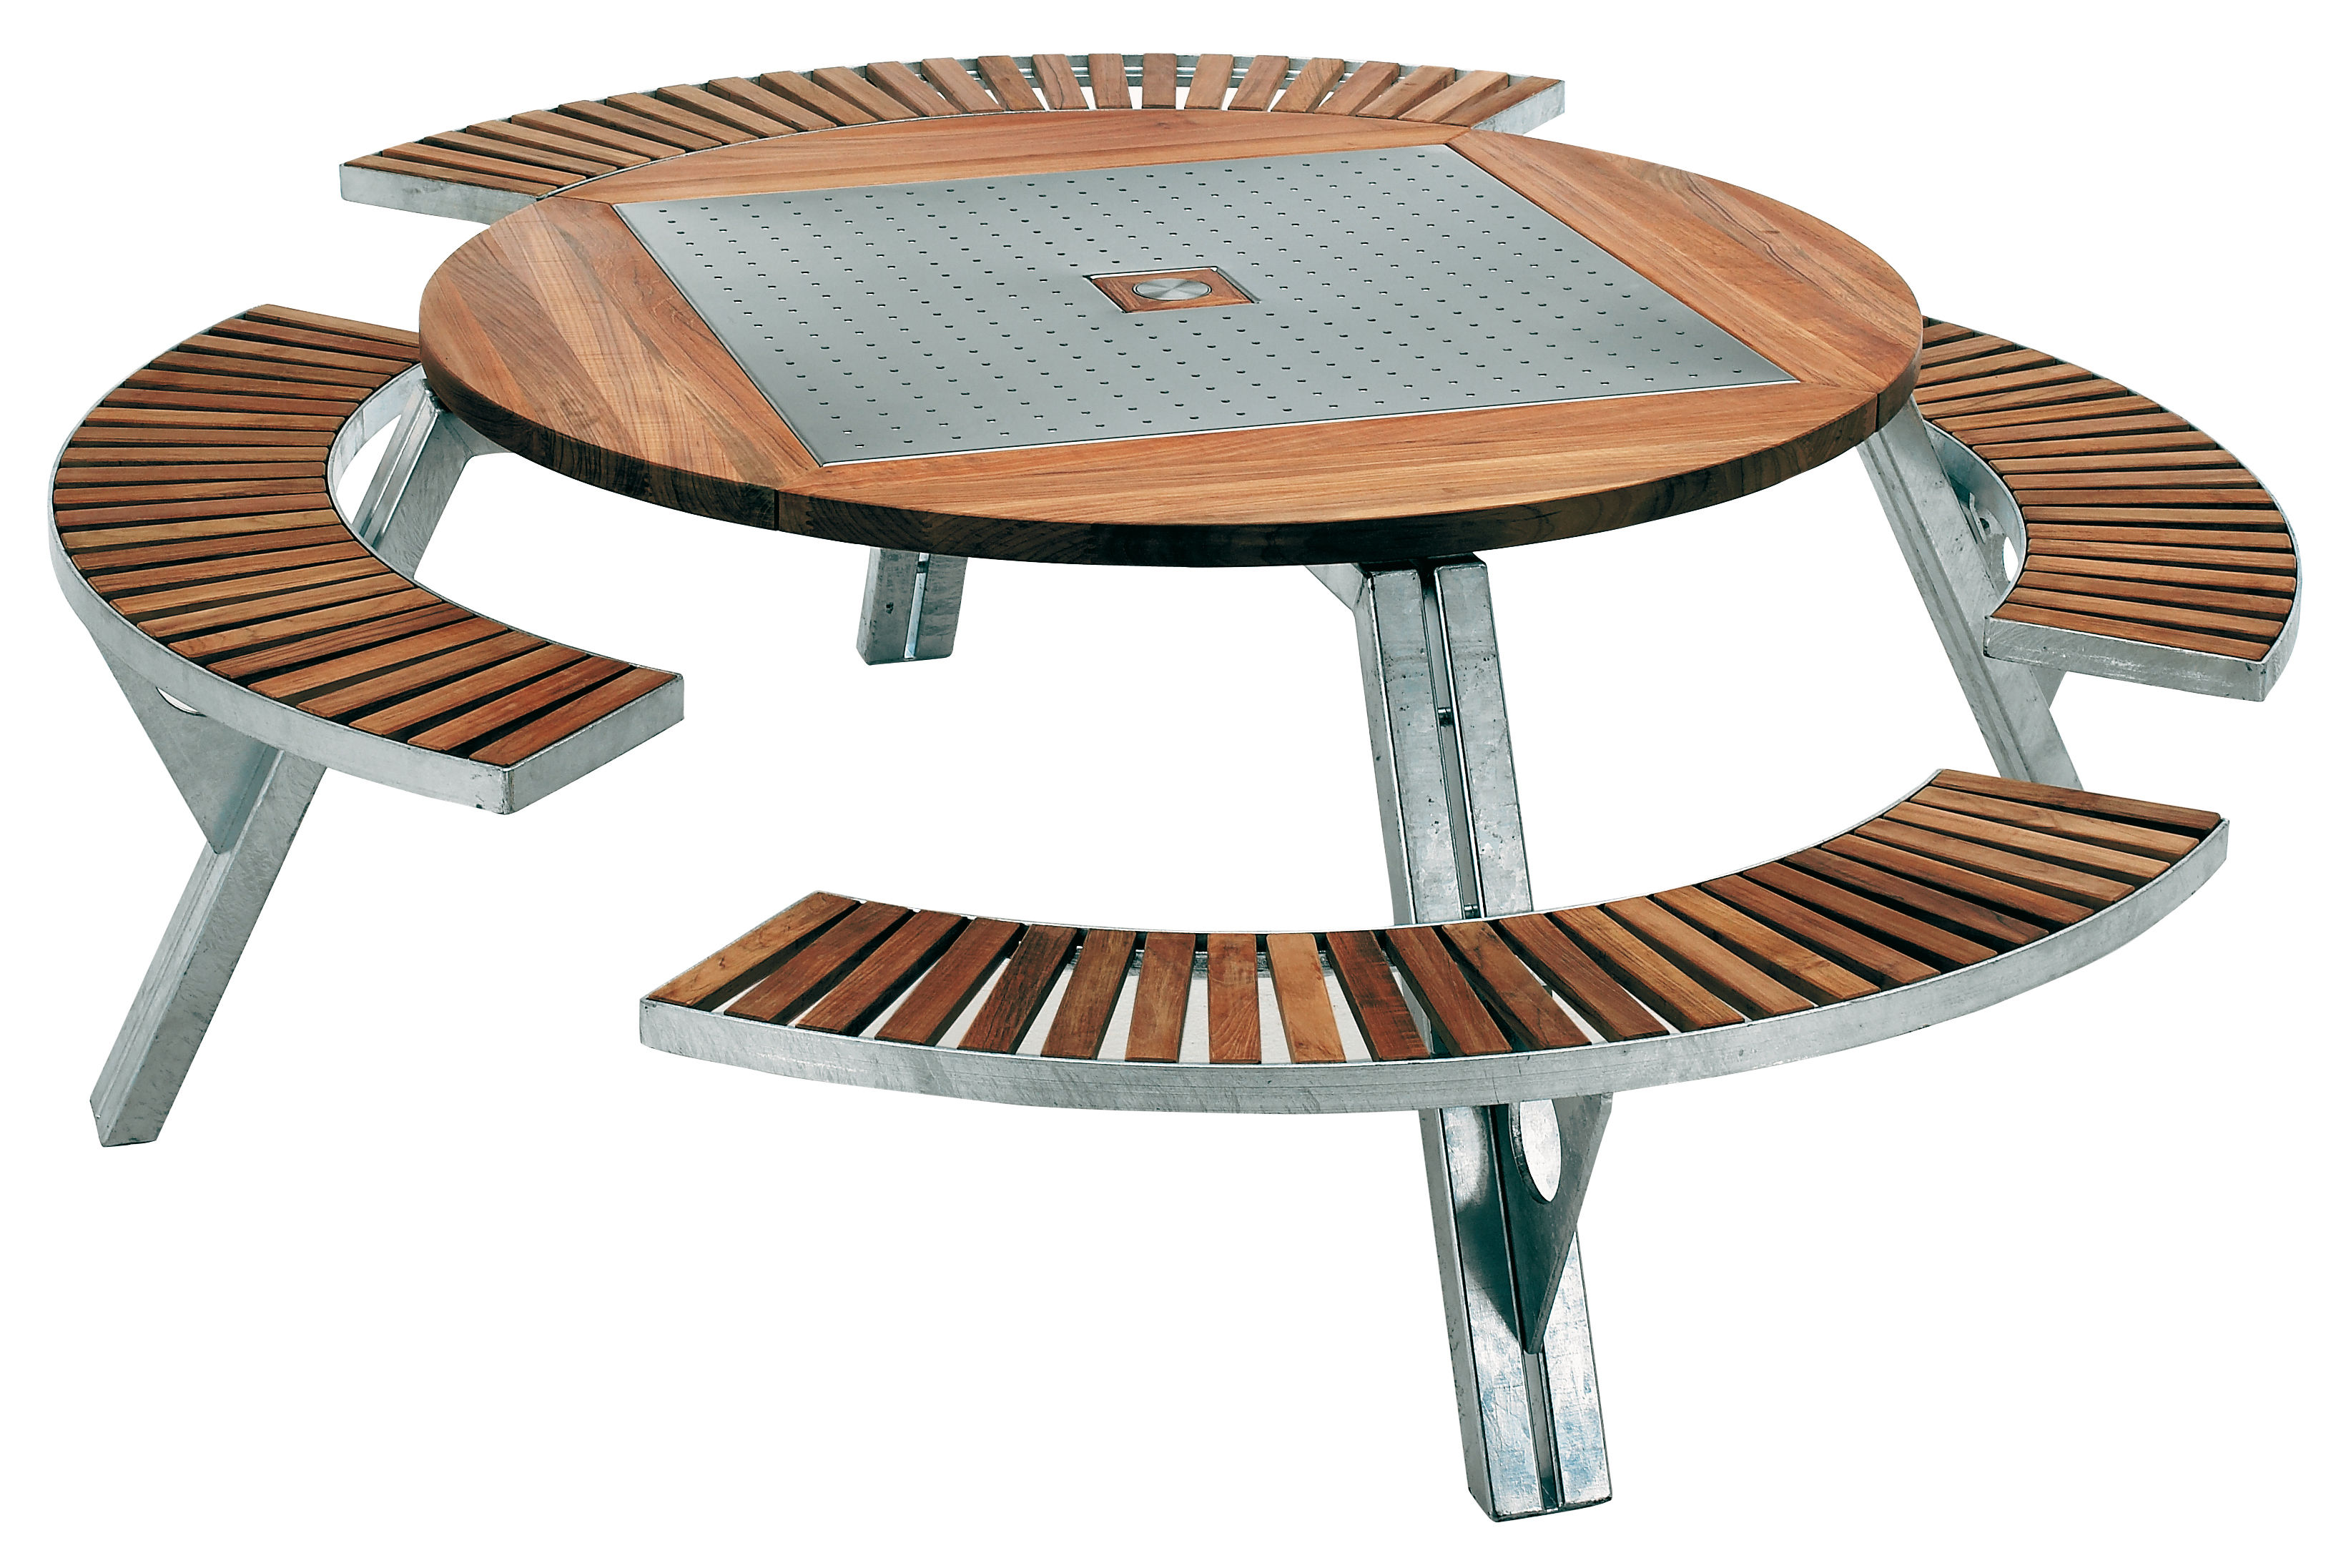 Table de jardin gargantua 146 cm 200 cm banc for Hauteur table de jardin